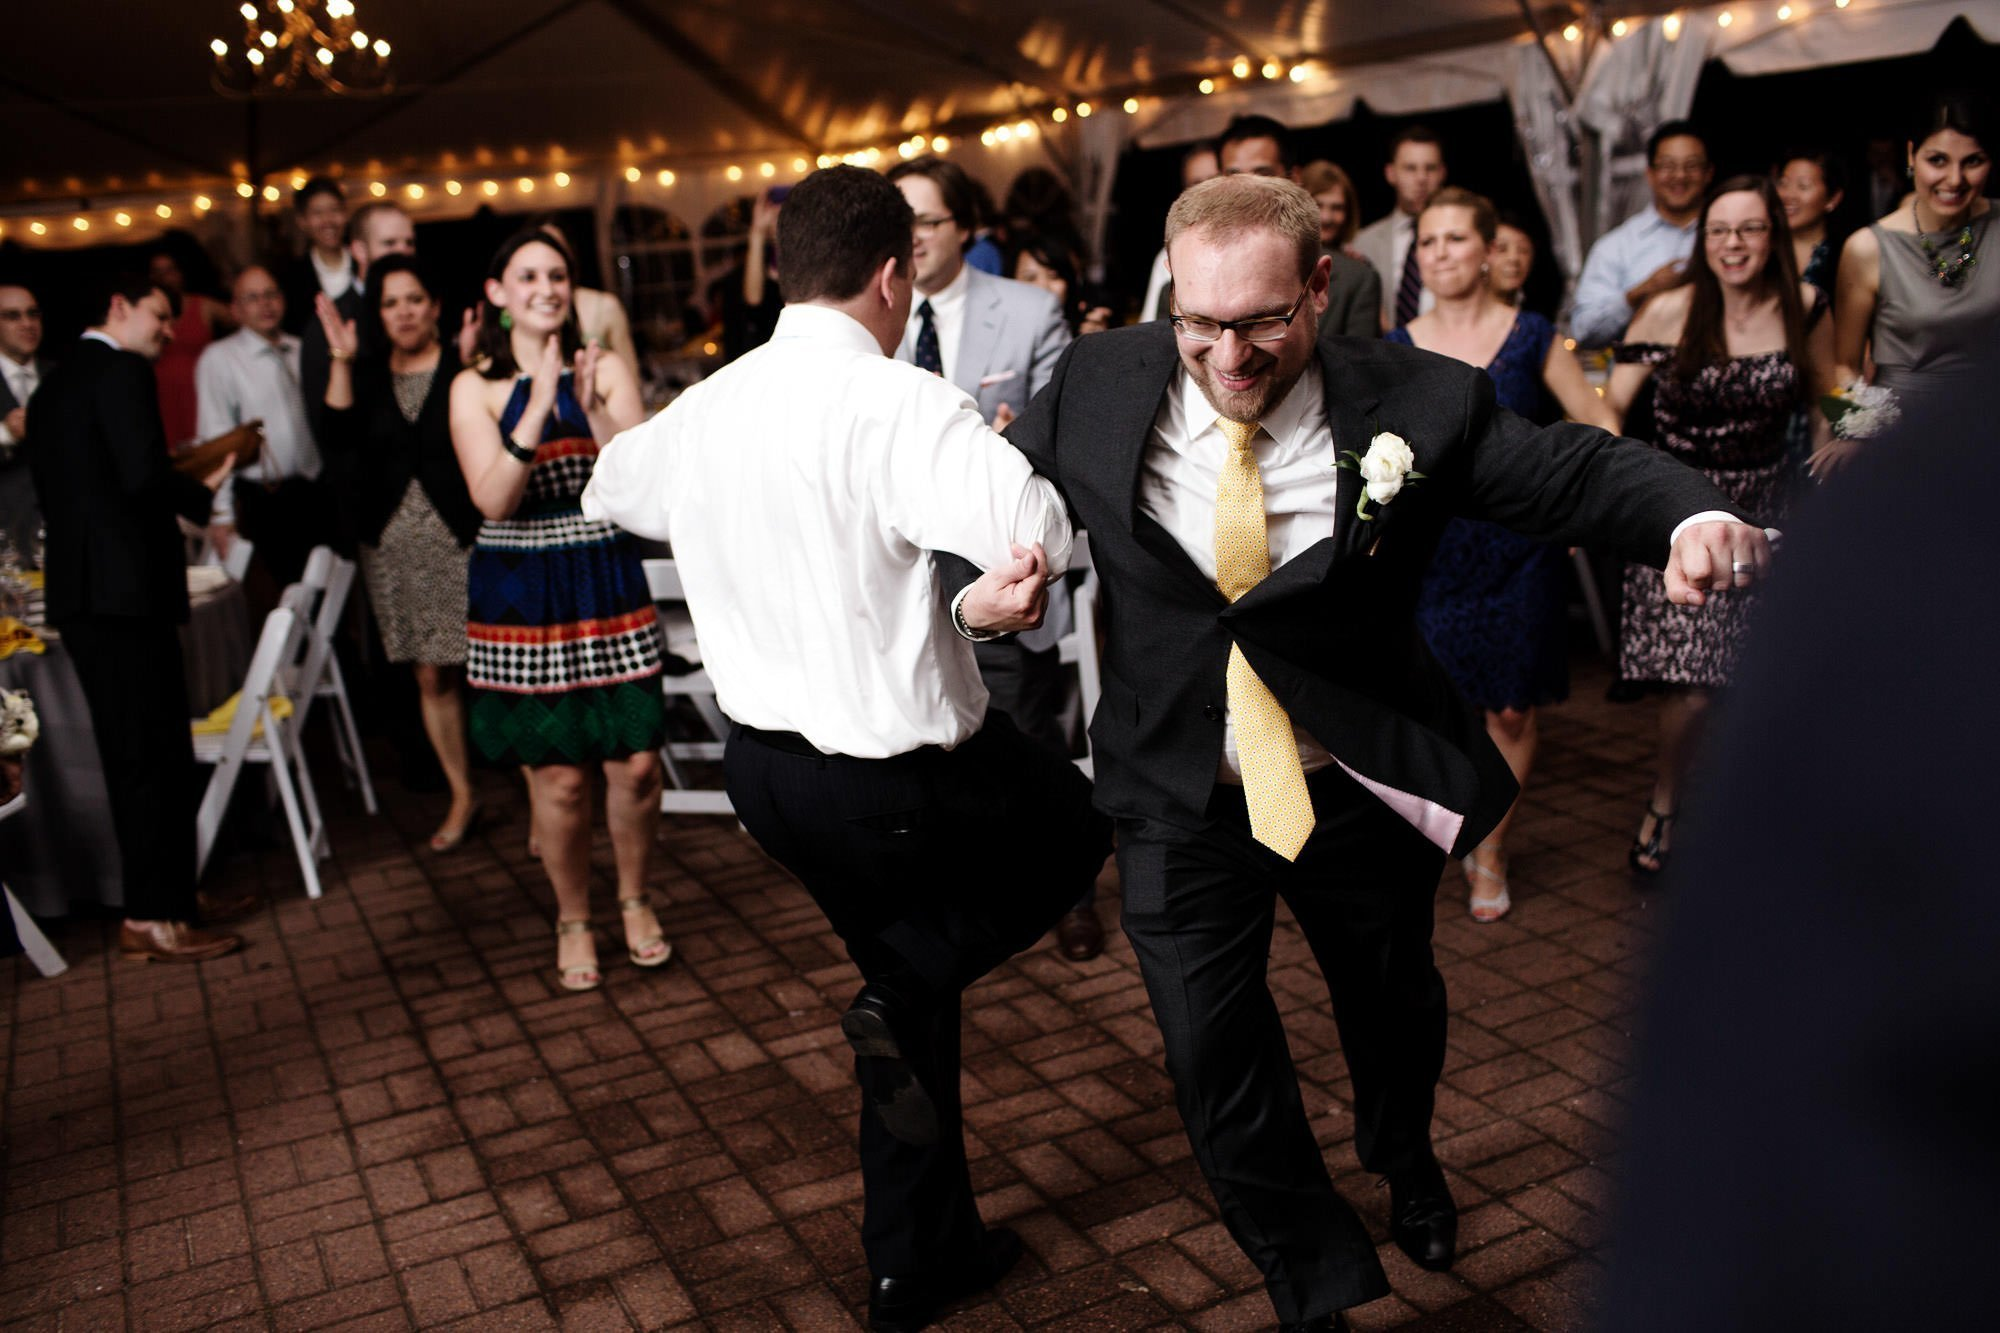 Wedding guests dance during the wedding reception at Oxon Hill Manor.